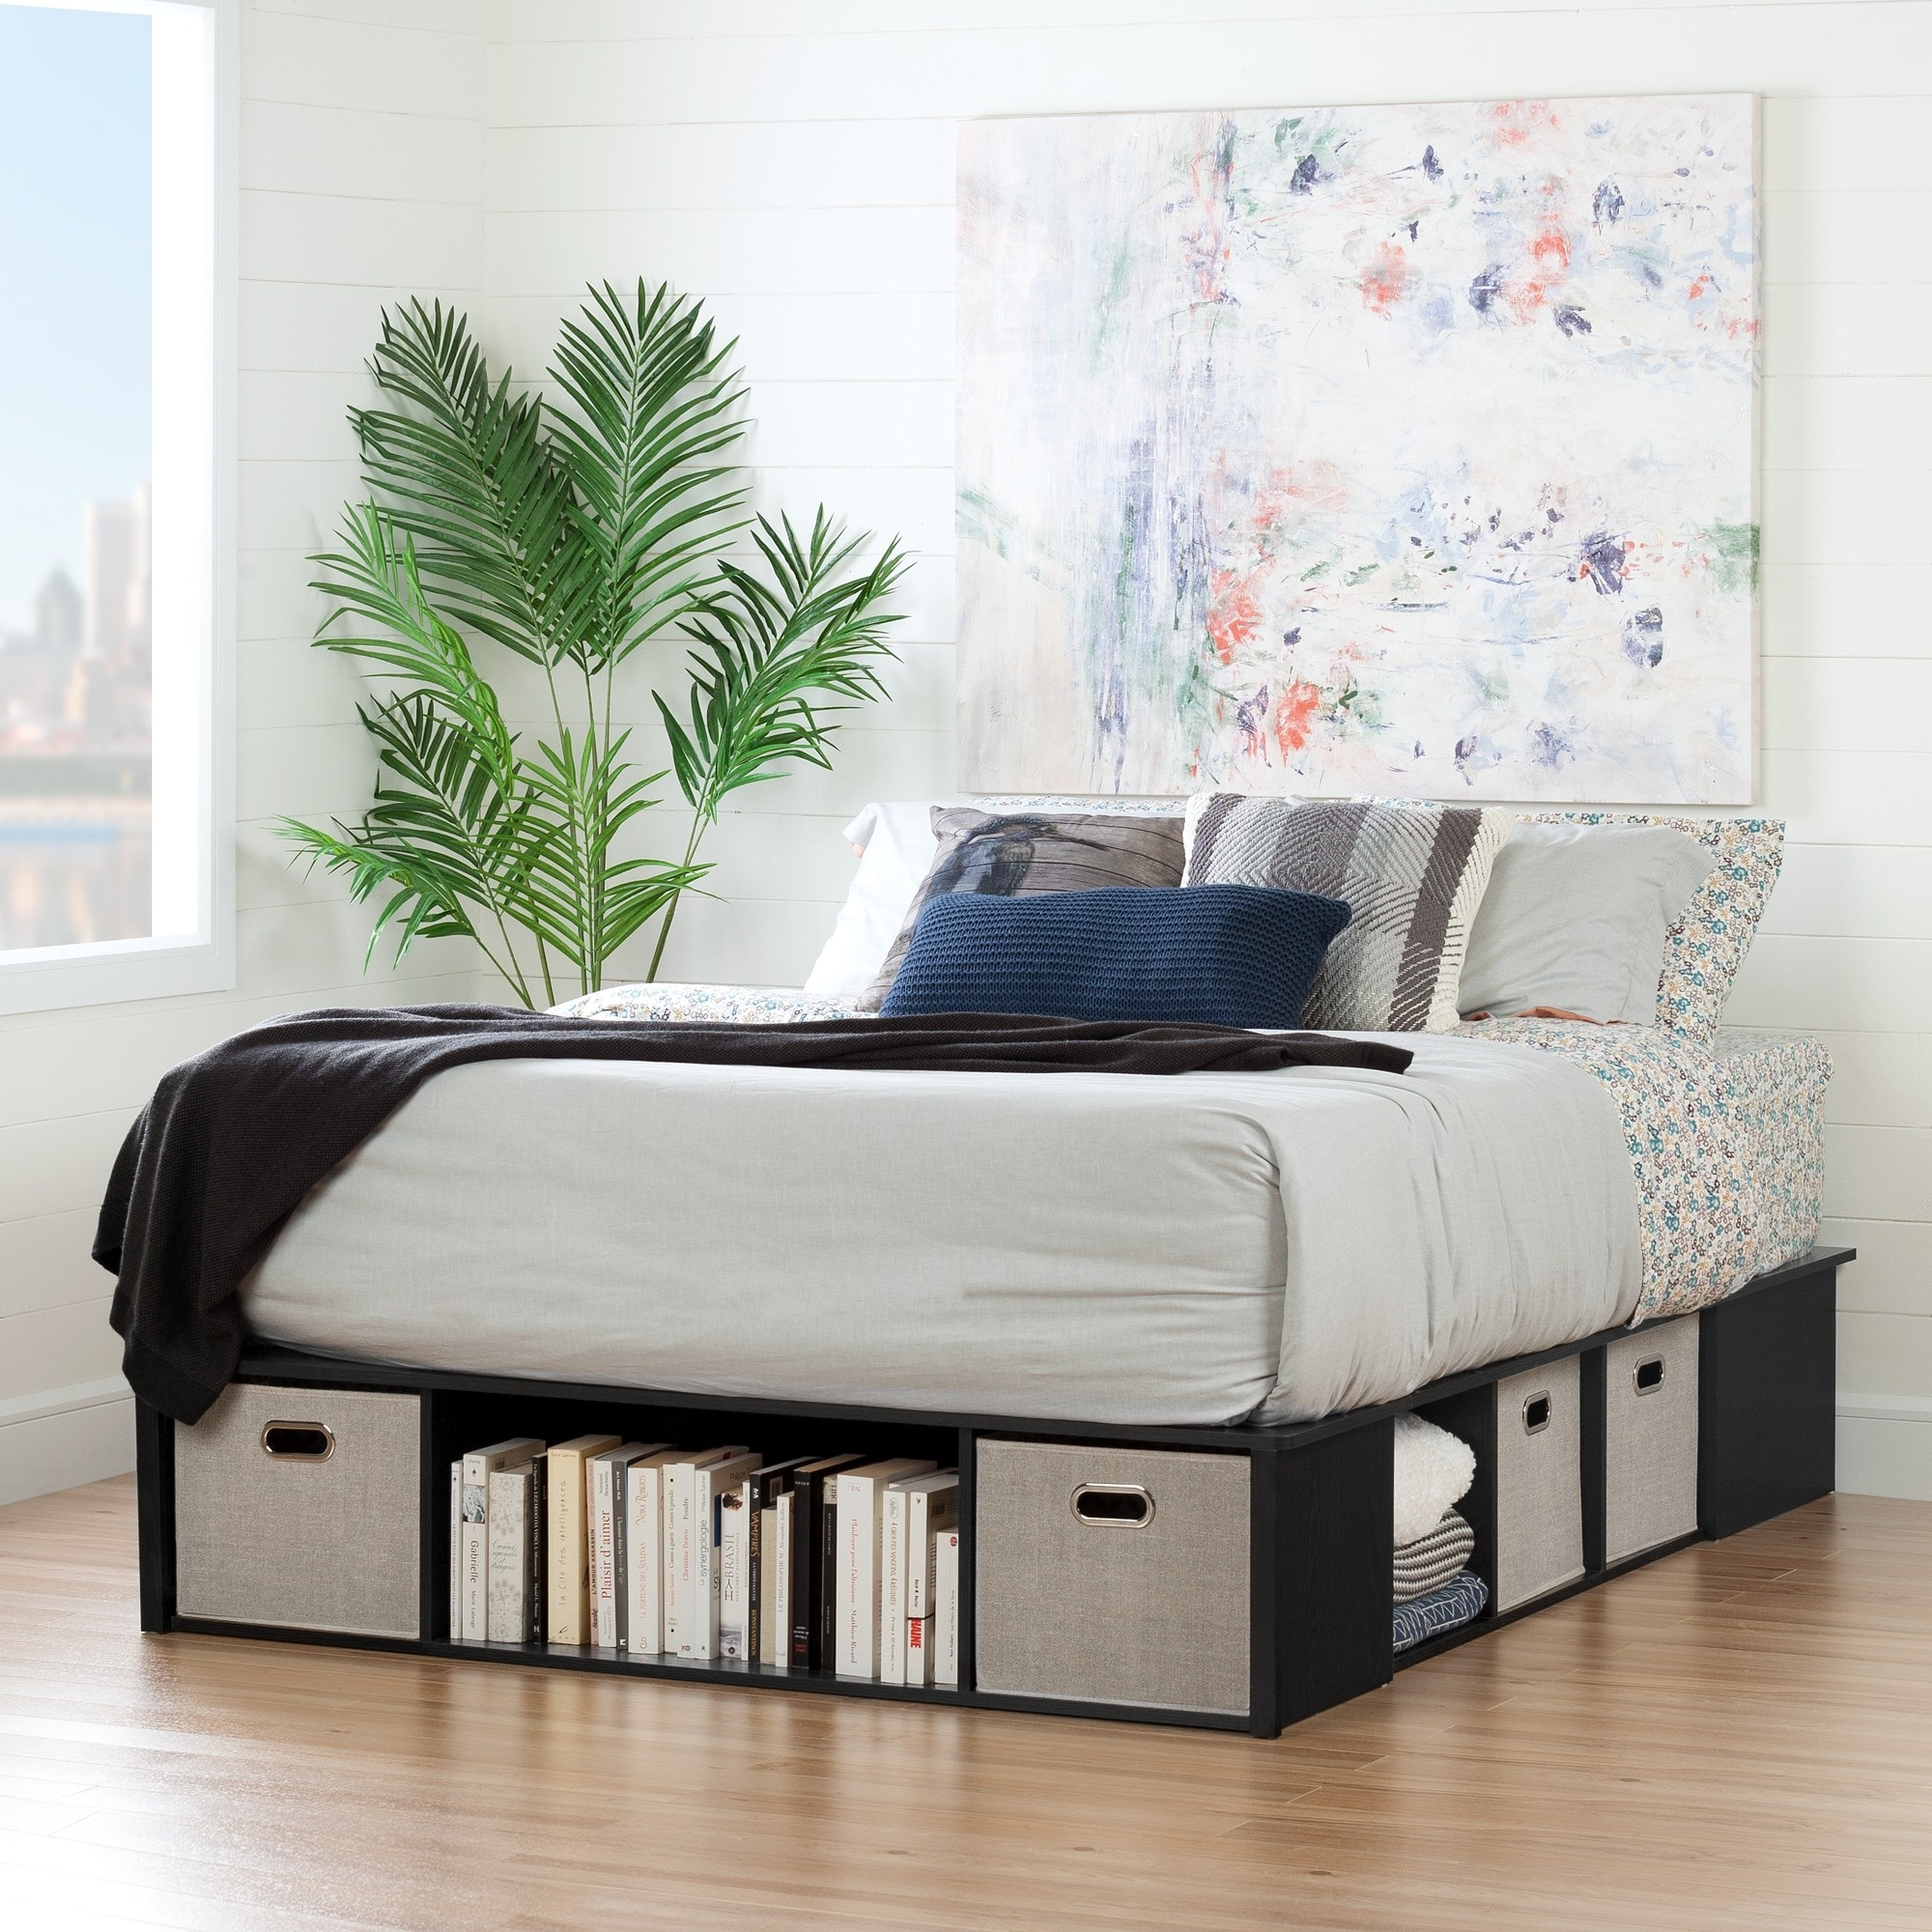 Picture of: Flexible Contemporary Queen Size Storage Bed With 4 Baskets Overstock 13260557